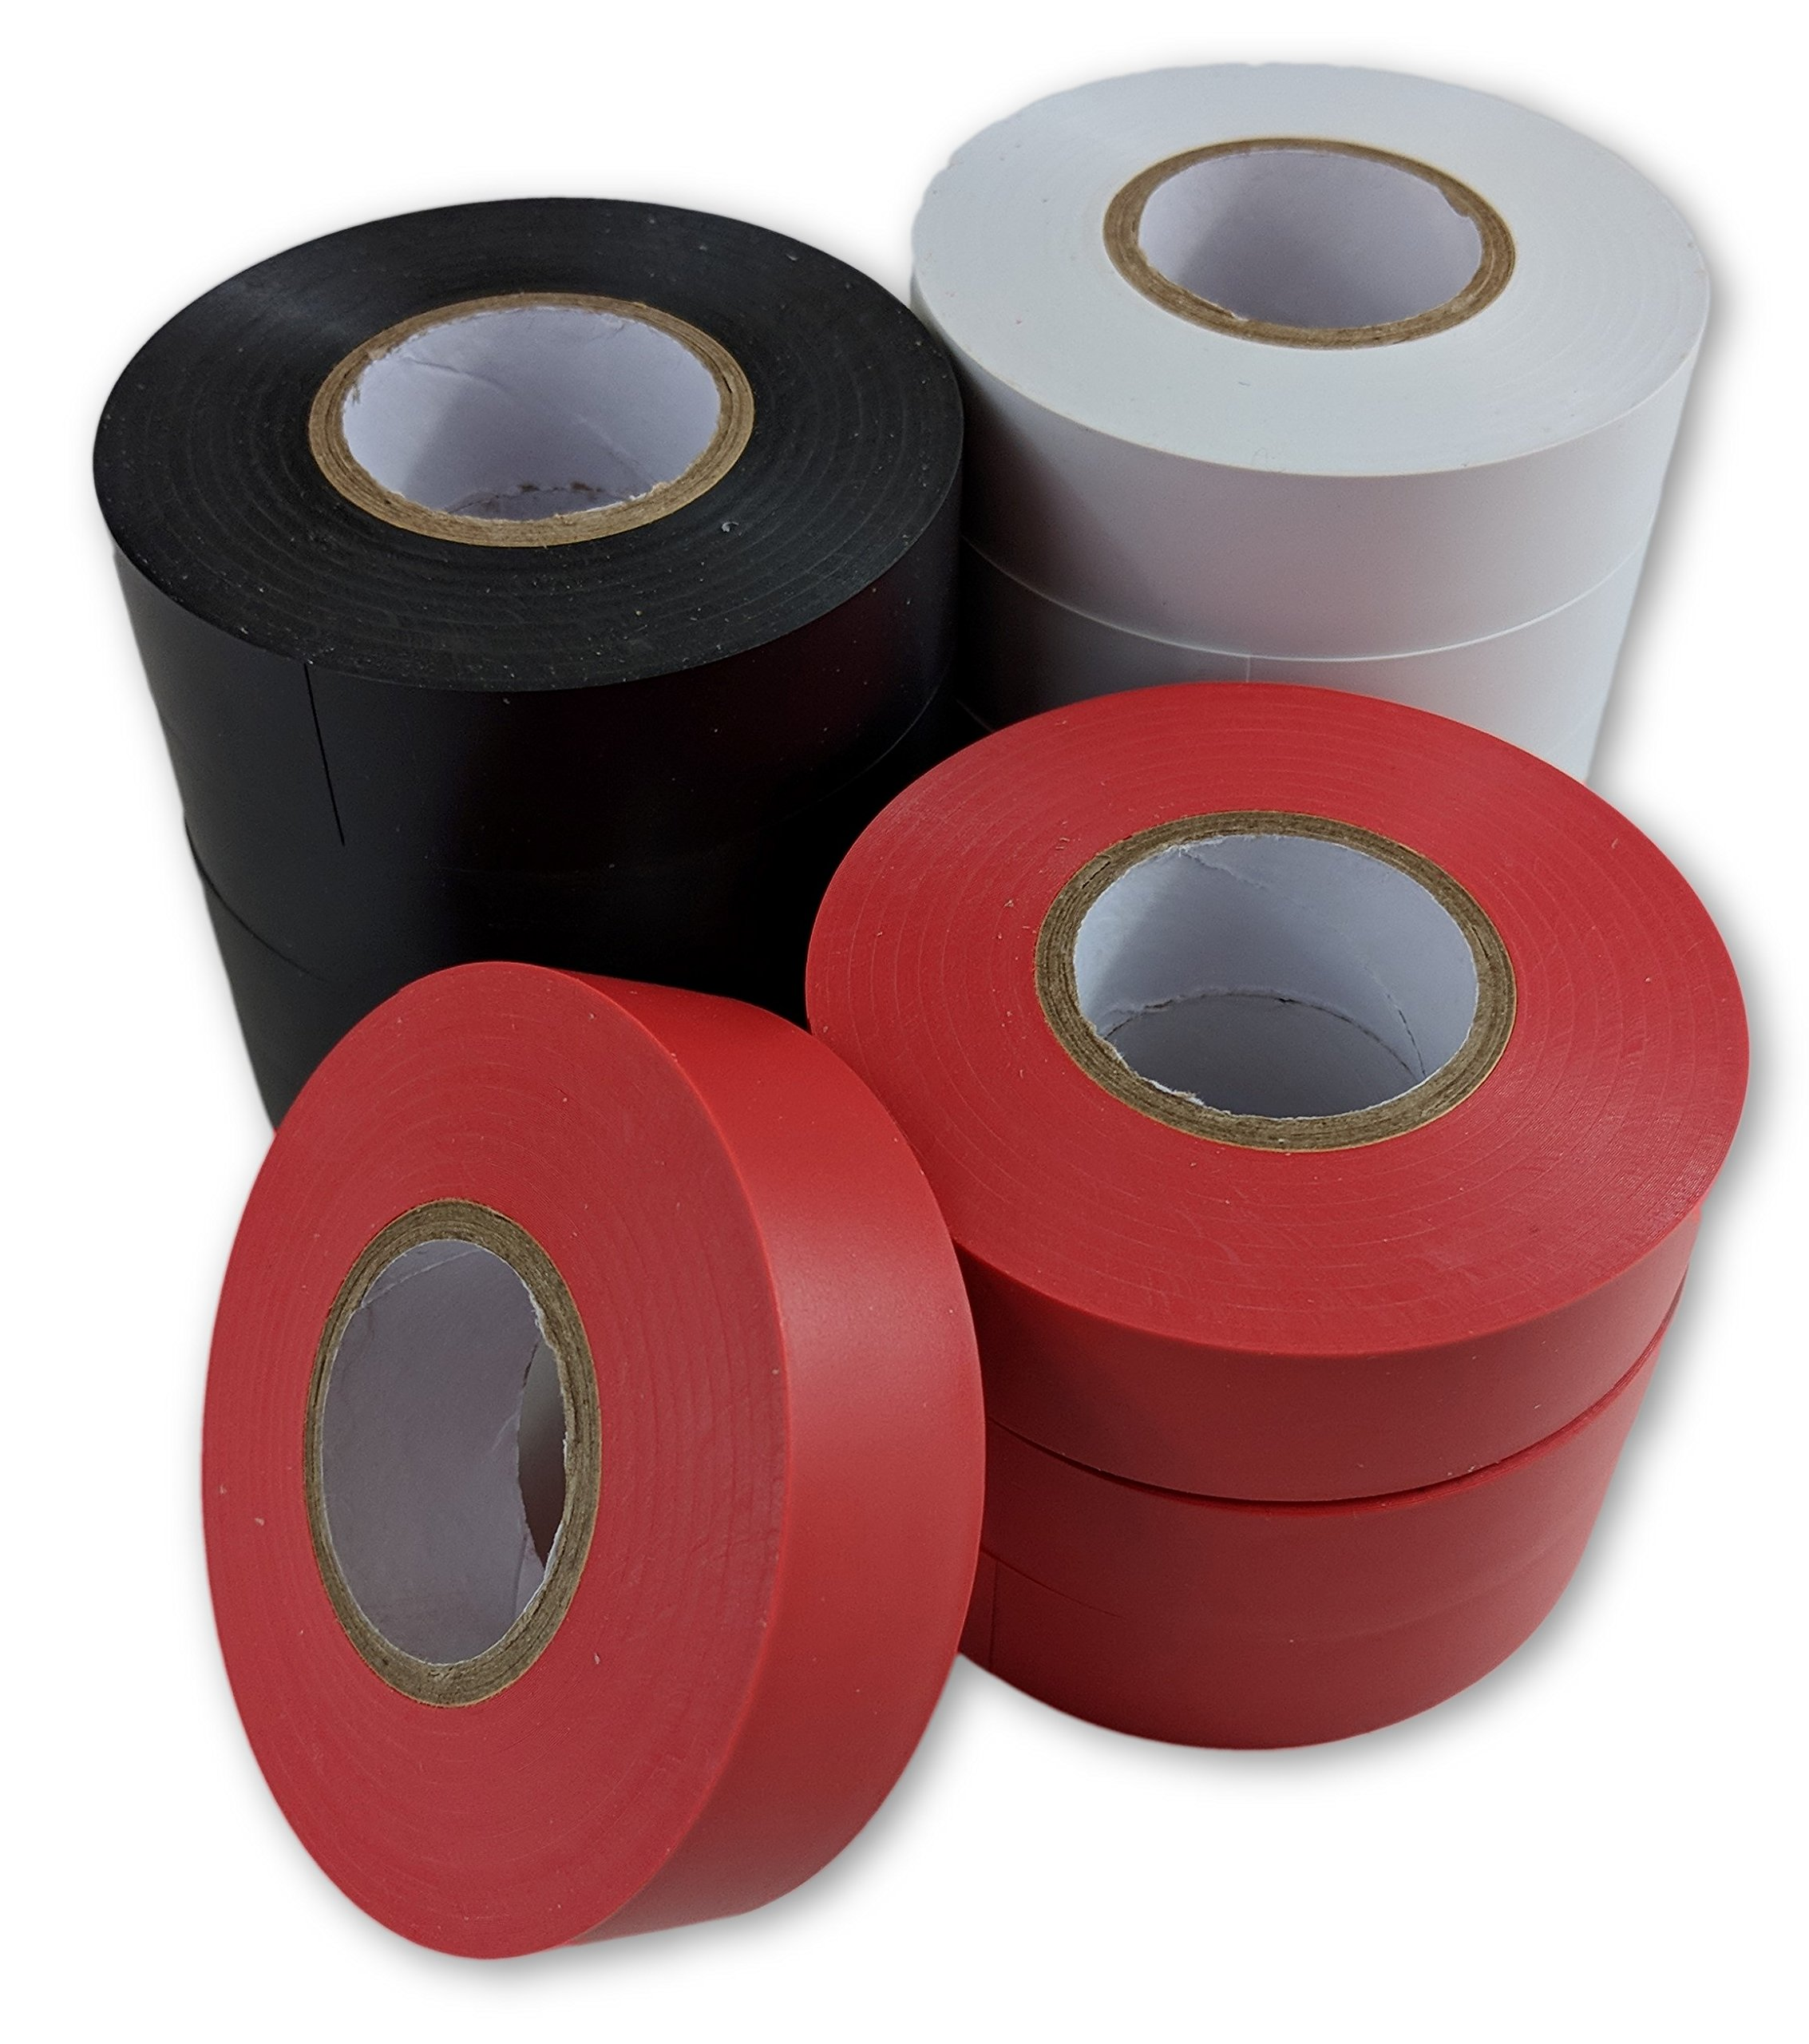 Electrical Tape|12 Pack |White, Black and Red Rolls of Electric Tape - Colored Electrical Tape Assortment -Each Roll is 3/4 inches wide x 60 feet - Flame Retardant Heavy Duty PVC Backed Adhesive Tape